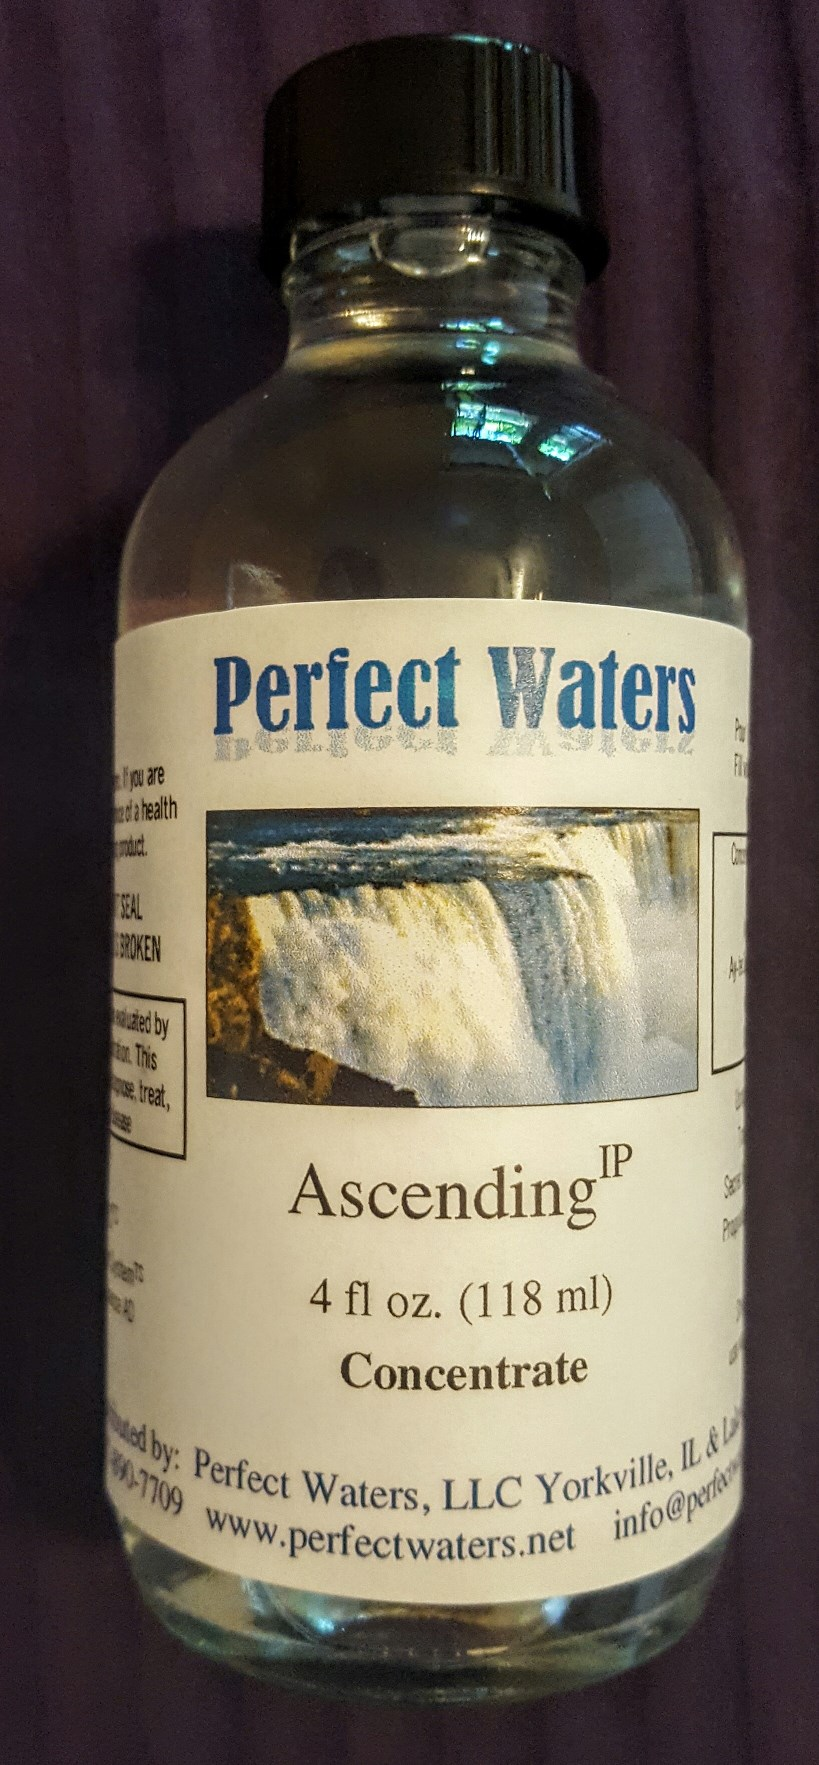 Ascending Concentrate